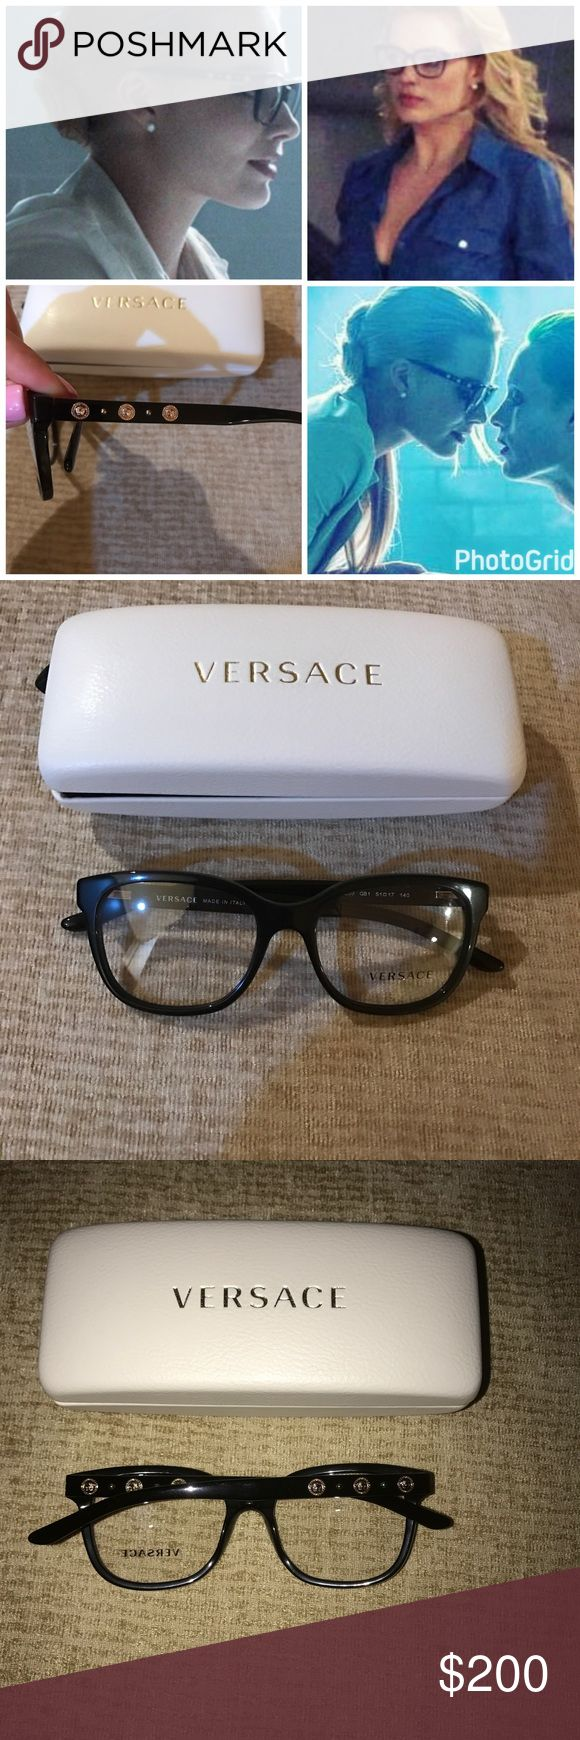 Versace Harley Quinn Margot Robbie glasses 3203 These Are the glasses Margot Robbie wears in suicide squad when she is Dr. Quinzel. Brand new. Glass lenses Versace Accessories Glasses